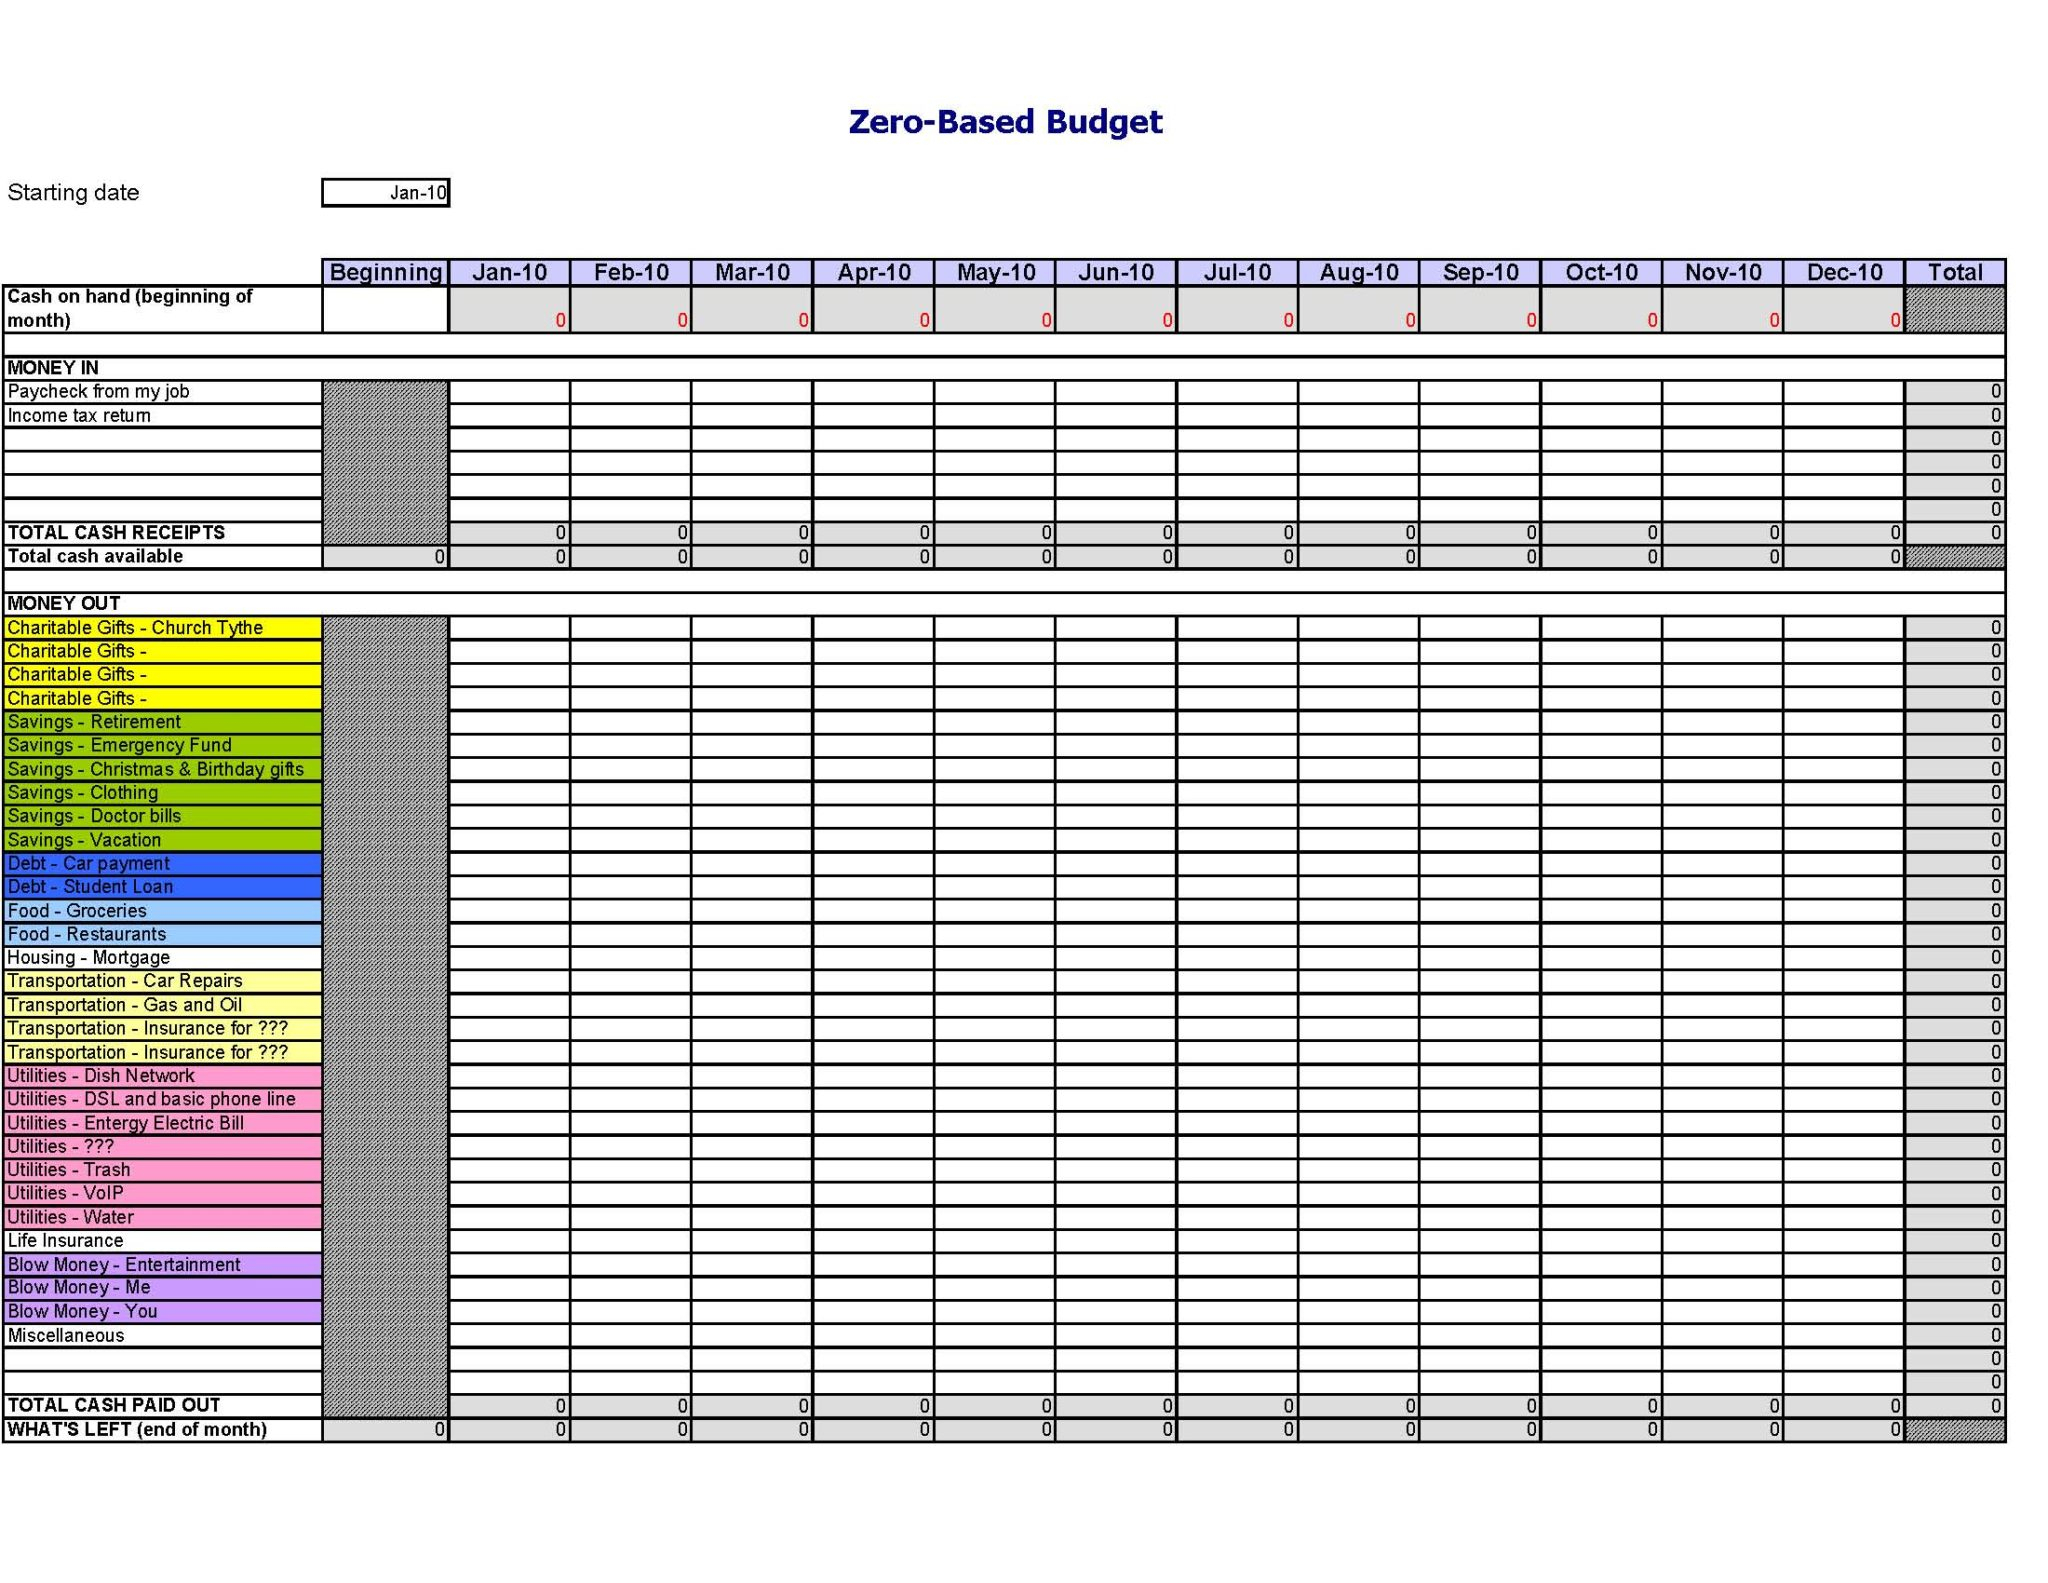 Sample Budget Spreadsheet For Non Profit | Natural Buff Dog Inside Samples Of Budget Spreadsheets